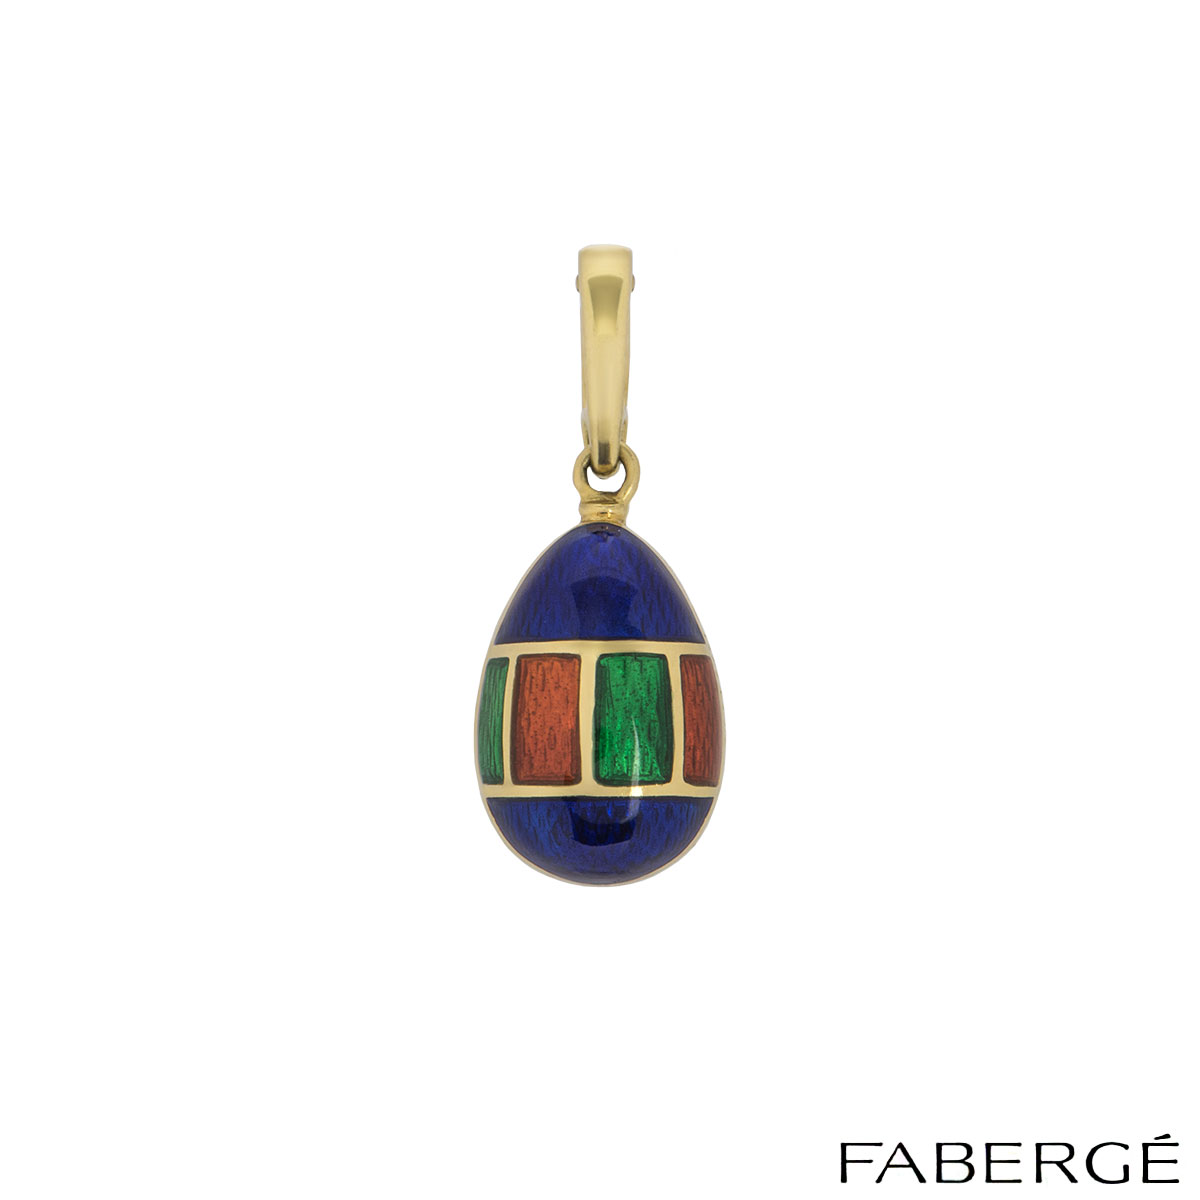 Faberge Yellow Gold Victor Mayer Egg Charm